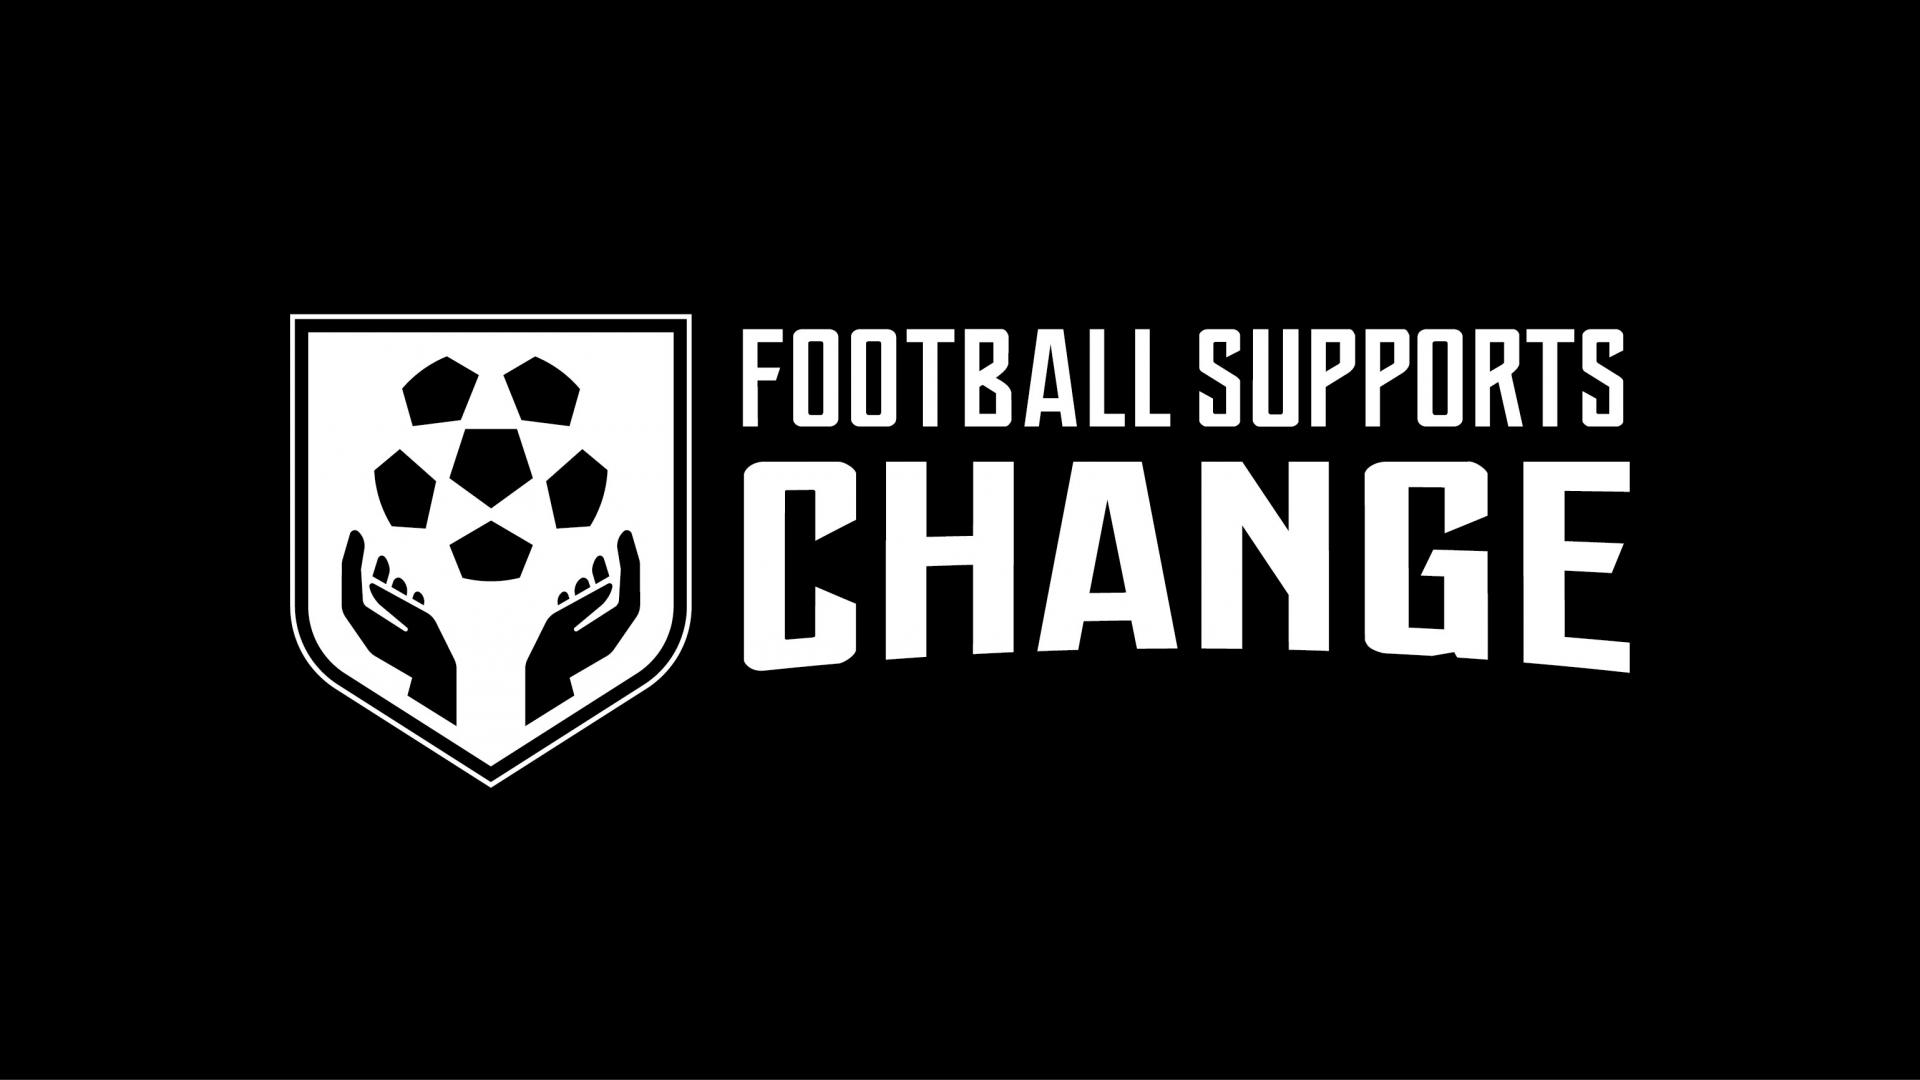 ORANJE DRAAGT &quote;FOOTBALL SUPPORTS CHANGE&quote; UIT